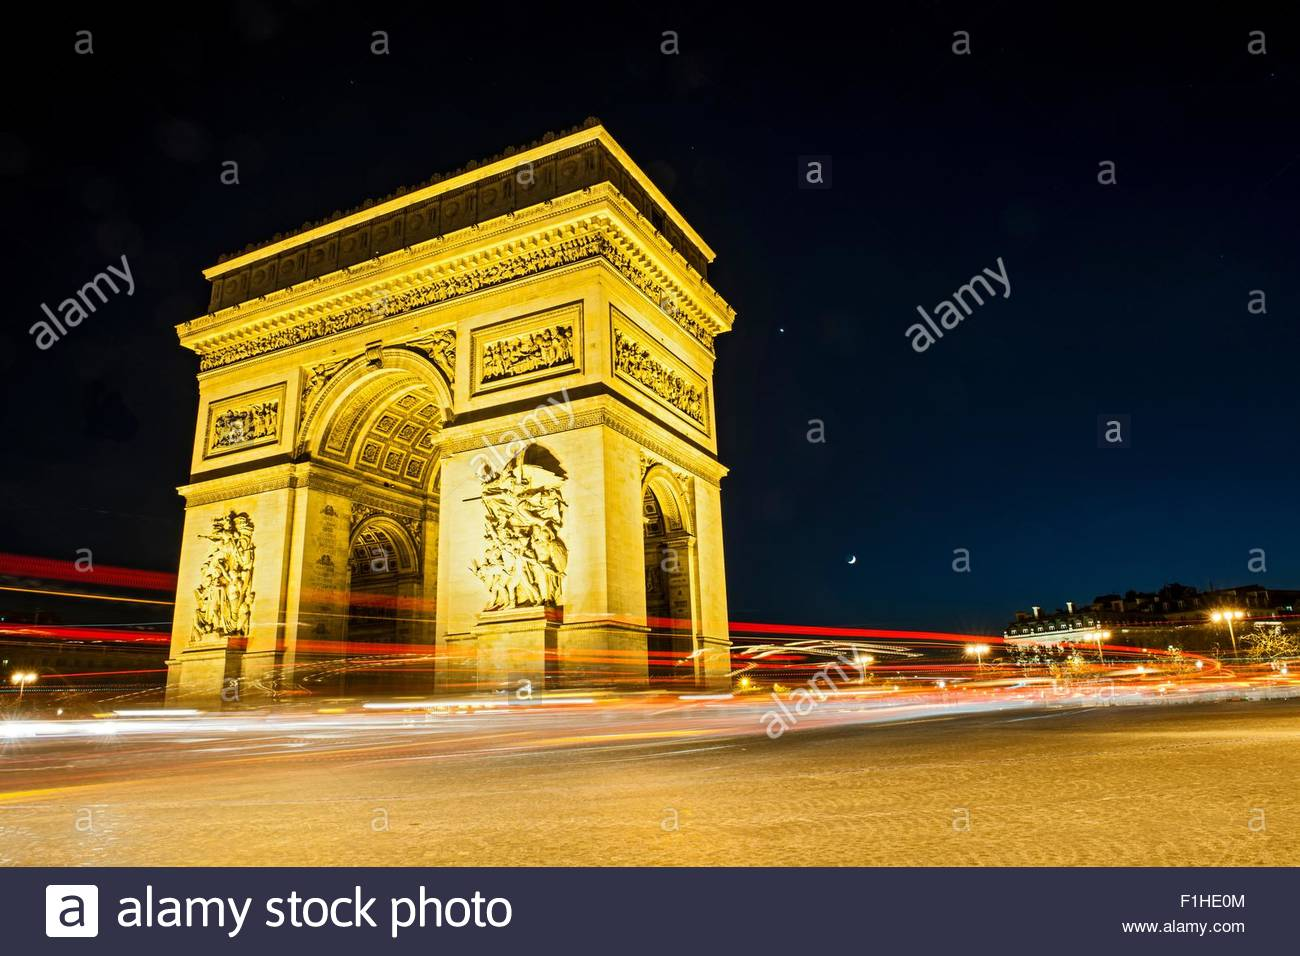 View of the Arc de Triomphe and traffic at night, Paris, France - Stock Image